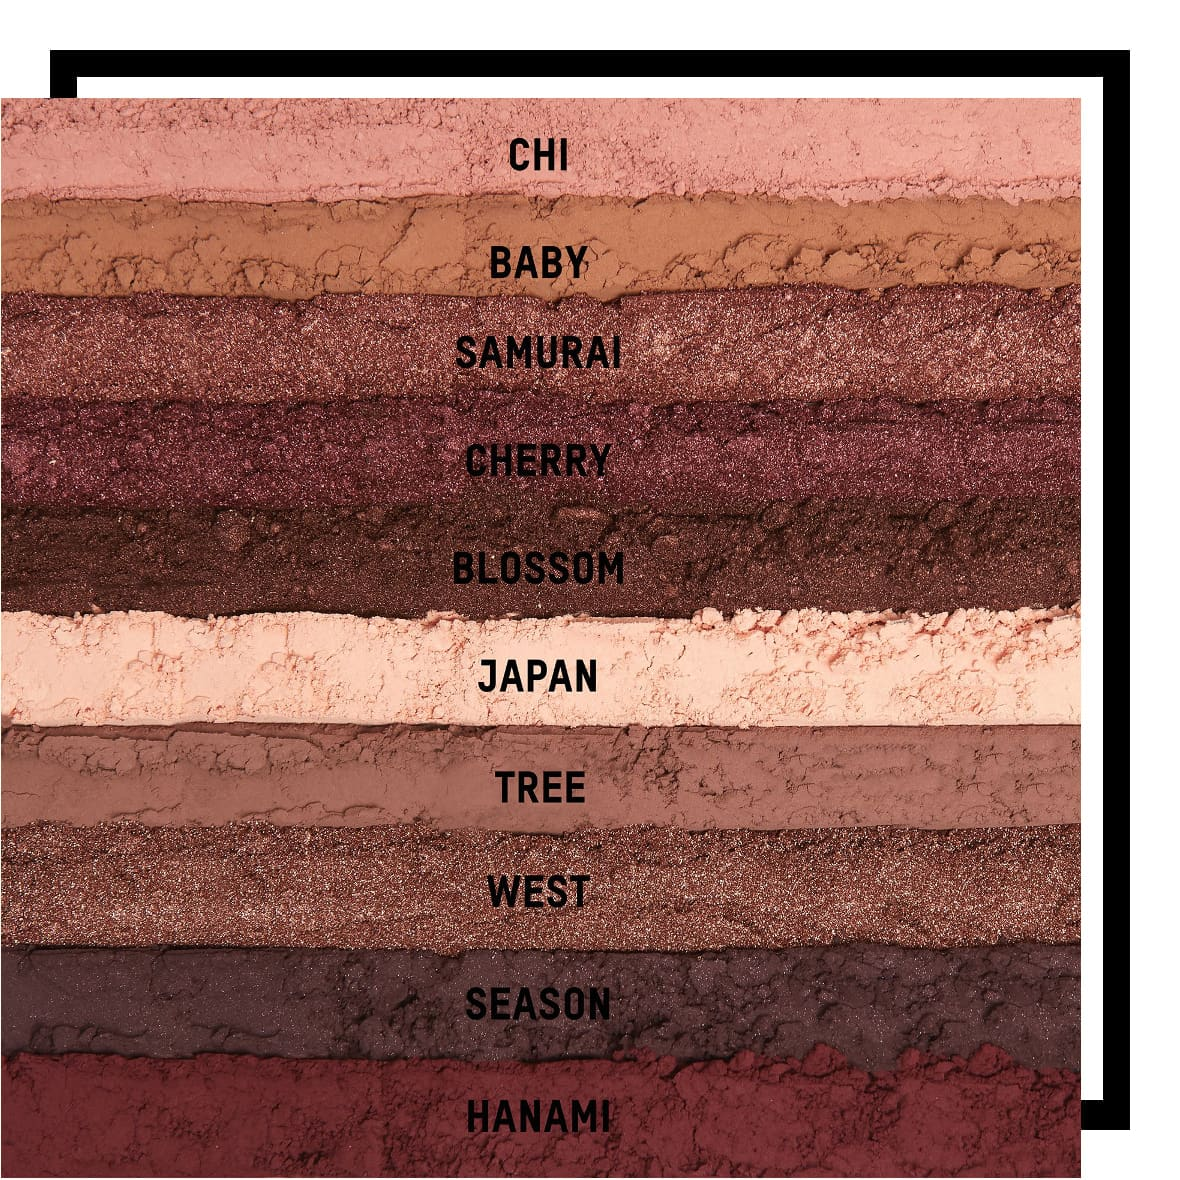 KKW Beauty Classic Blossom Collection Cherry Blossom Palette Swatches